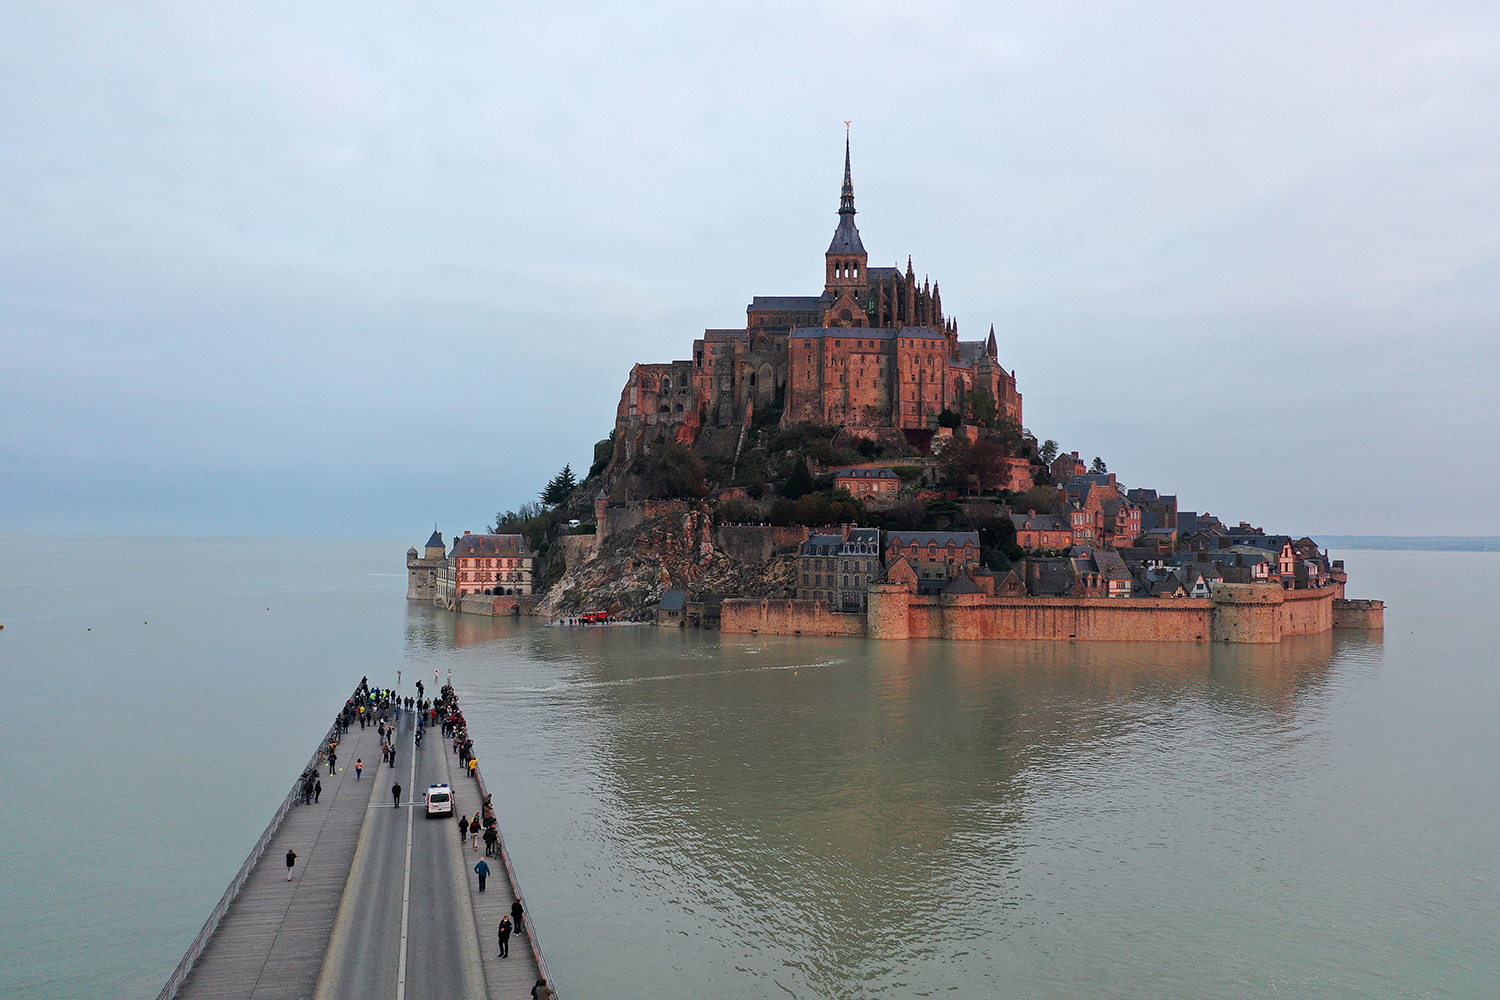 The Mont-Saint-Michel in Normandy, France, is cut off to visitors after its access road was flooded during high tide Oct. 18. DAMIEN MEYER/AFP via Getty Images